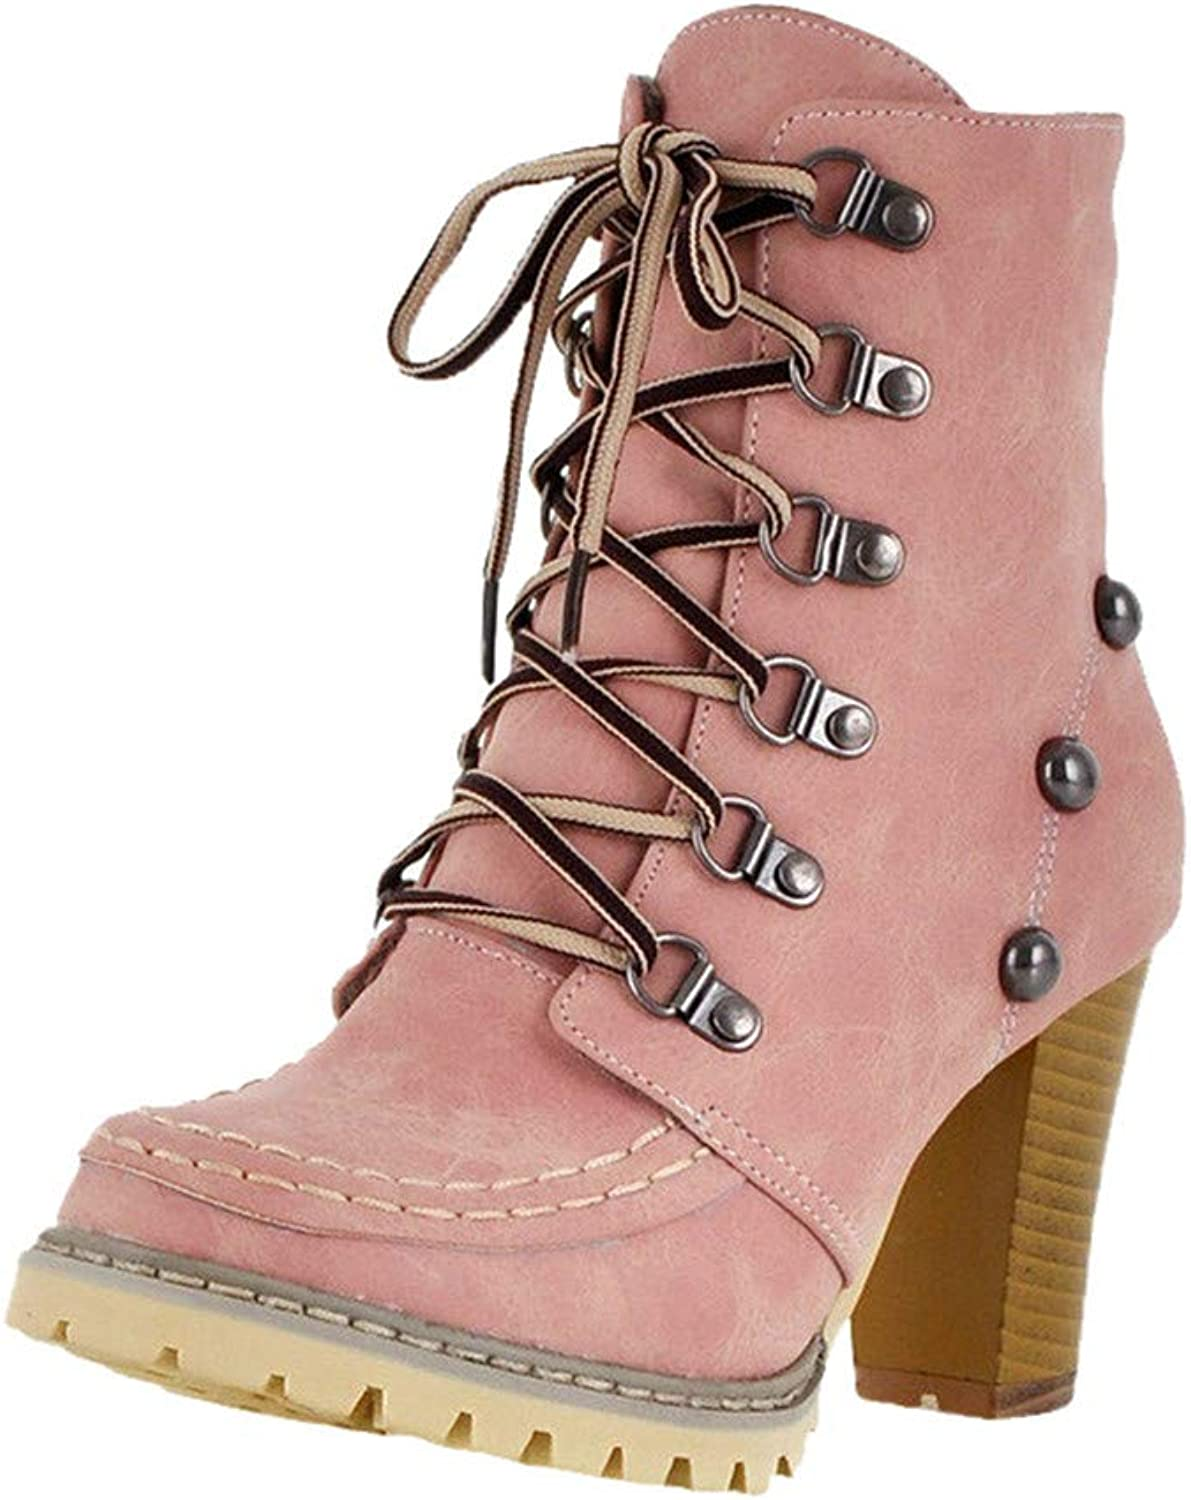 Teresamoon Women's Leisure Rivets shoes Non-Slip Lace-Up High Heel Short Tube Boots (Pink 38)